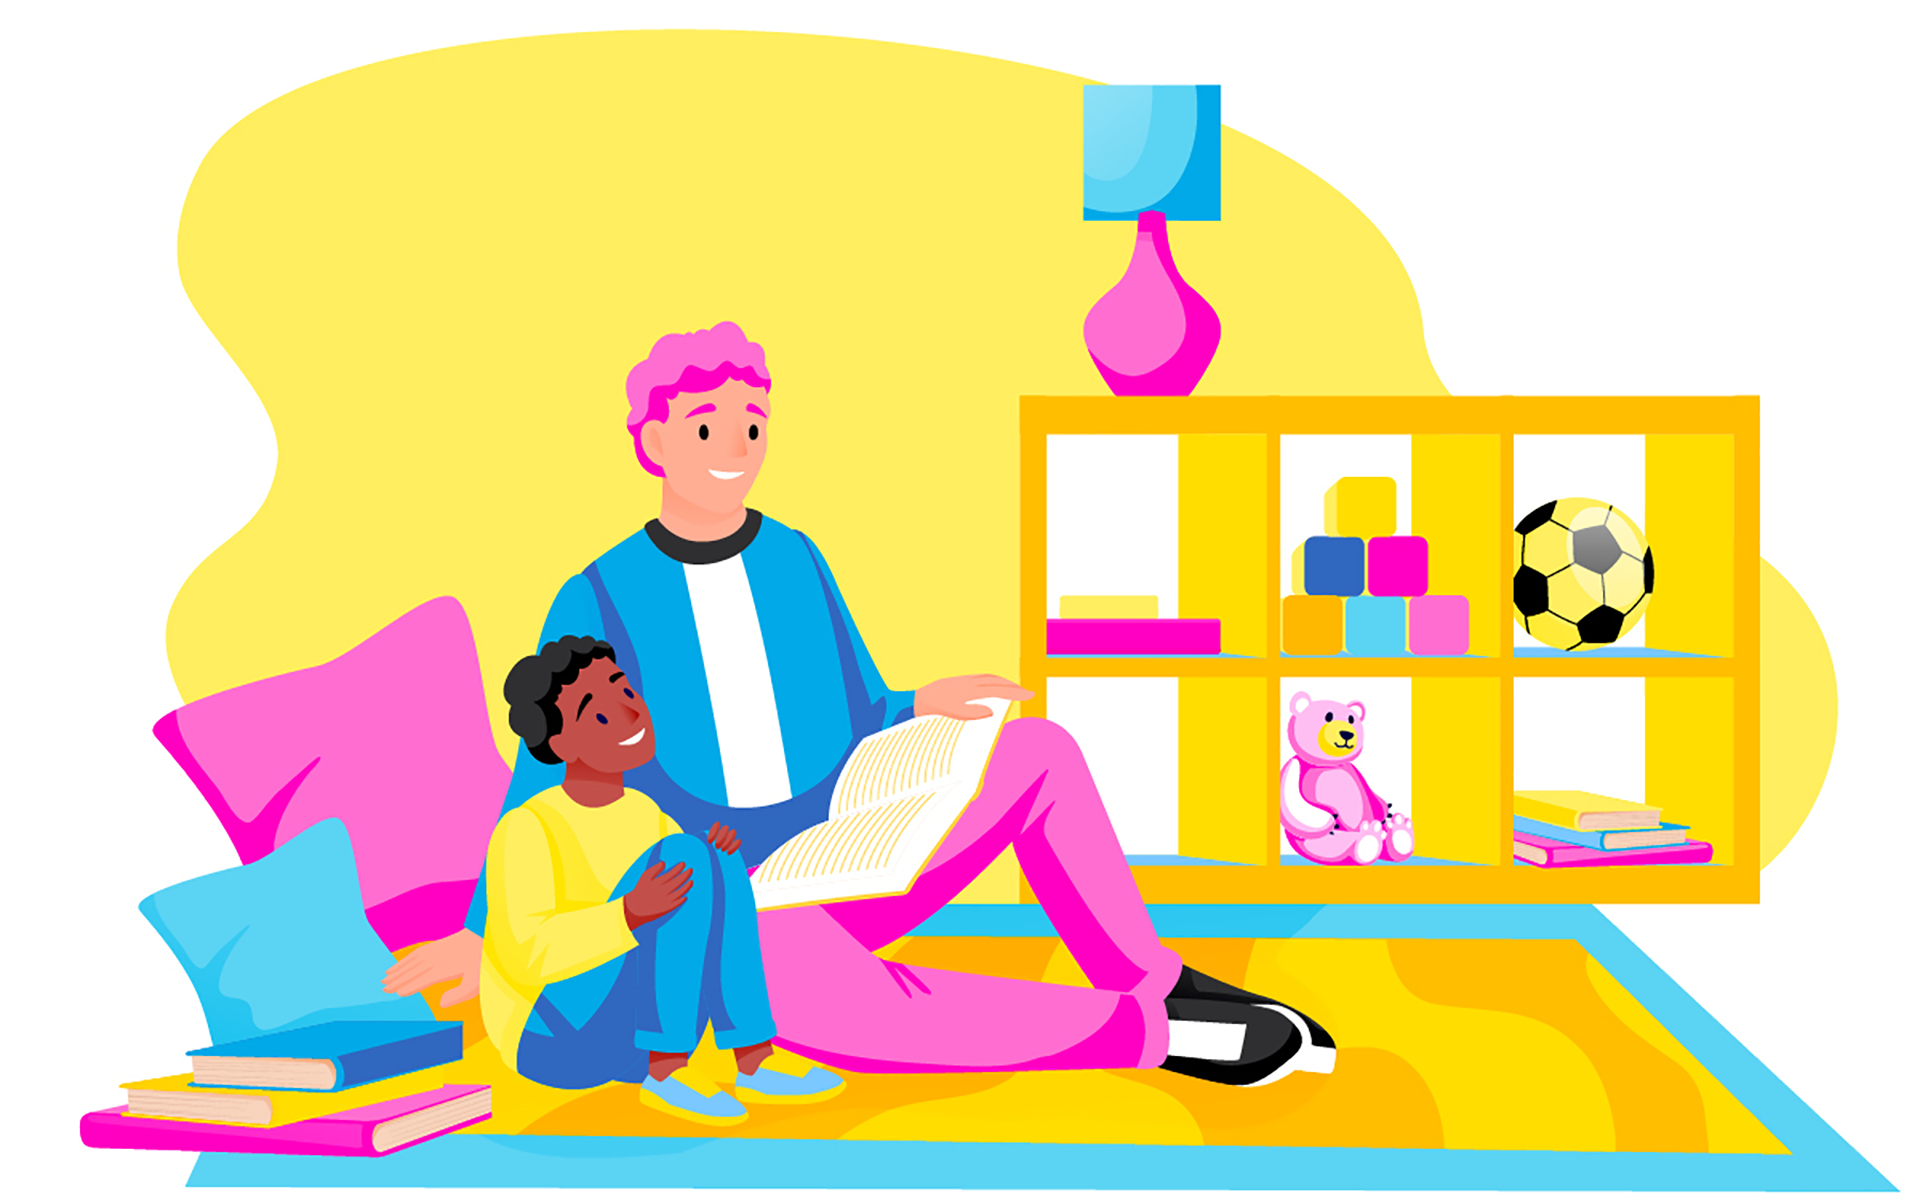 Liberating Masculinity With Edward M. Adams and Ed Frauenheim—Illustration of a middle-aged white man and a Black boy sitting on a carpet reading a book.